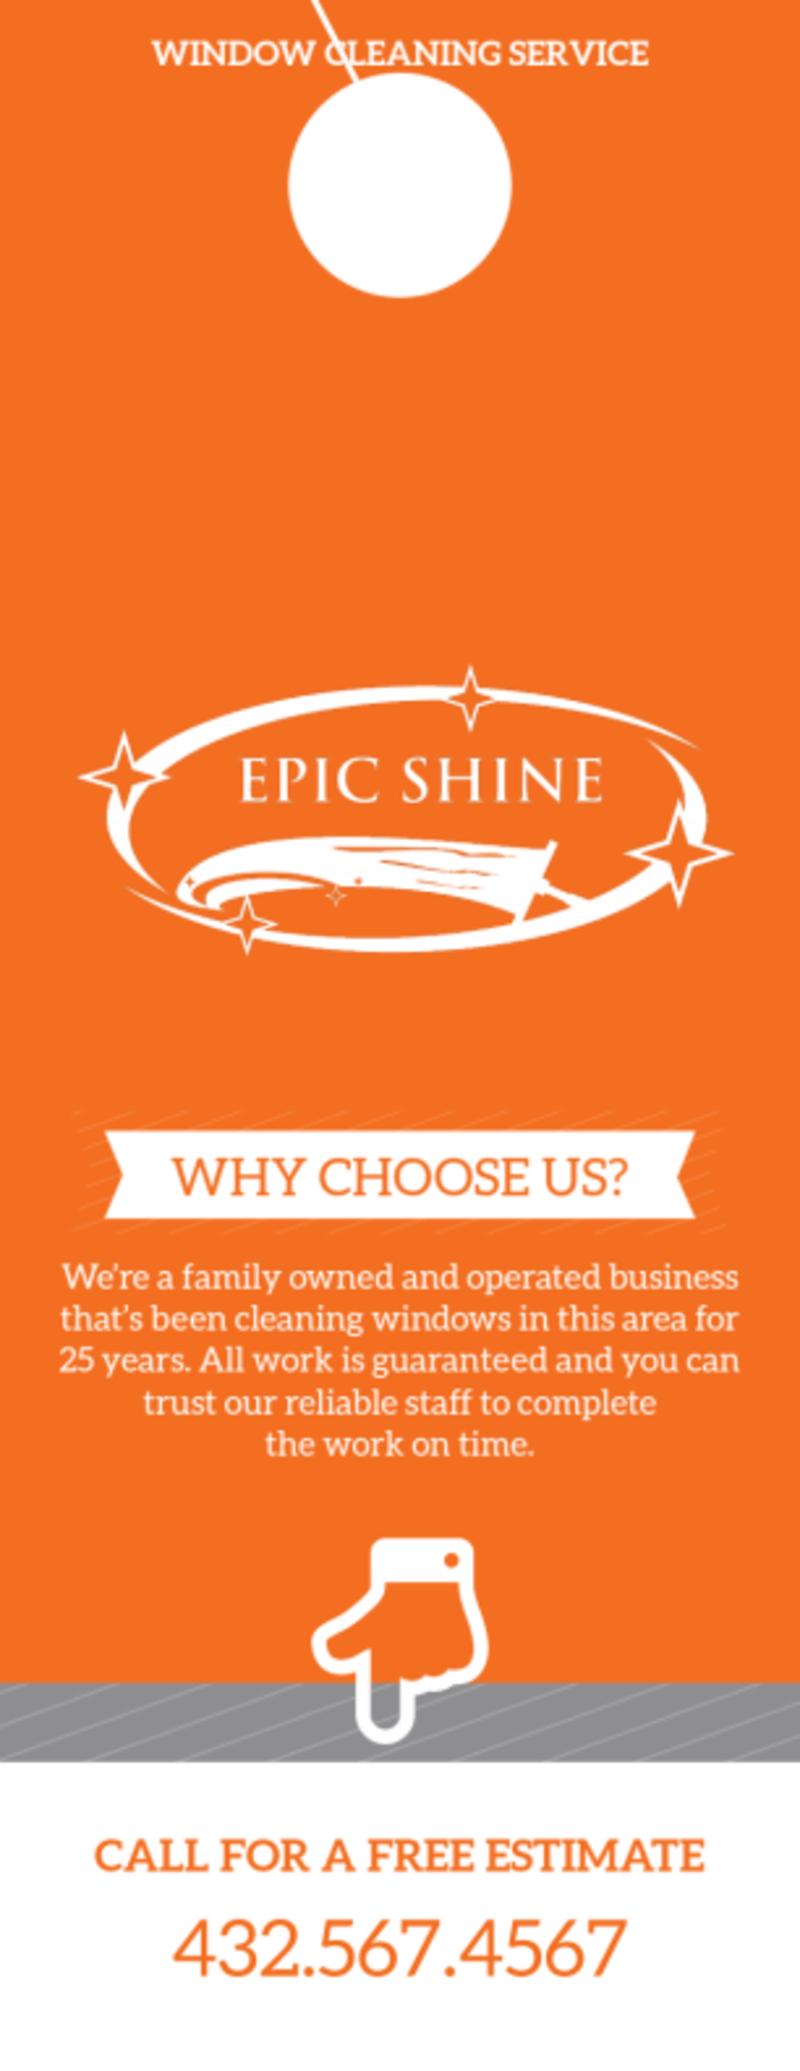 Epic Shine Window Cleaning Door Hanger Template Preview 2